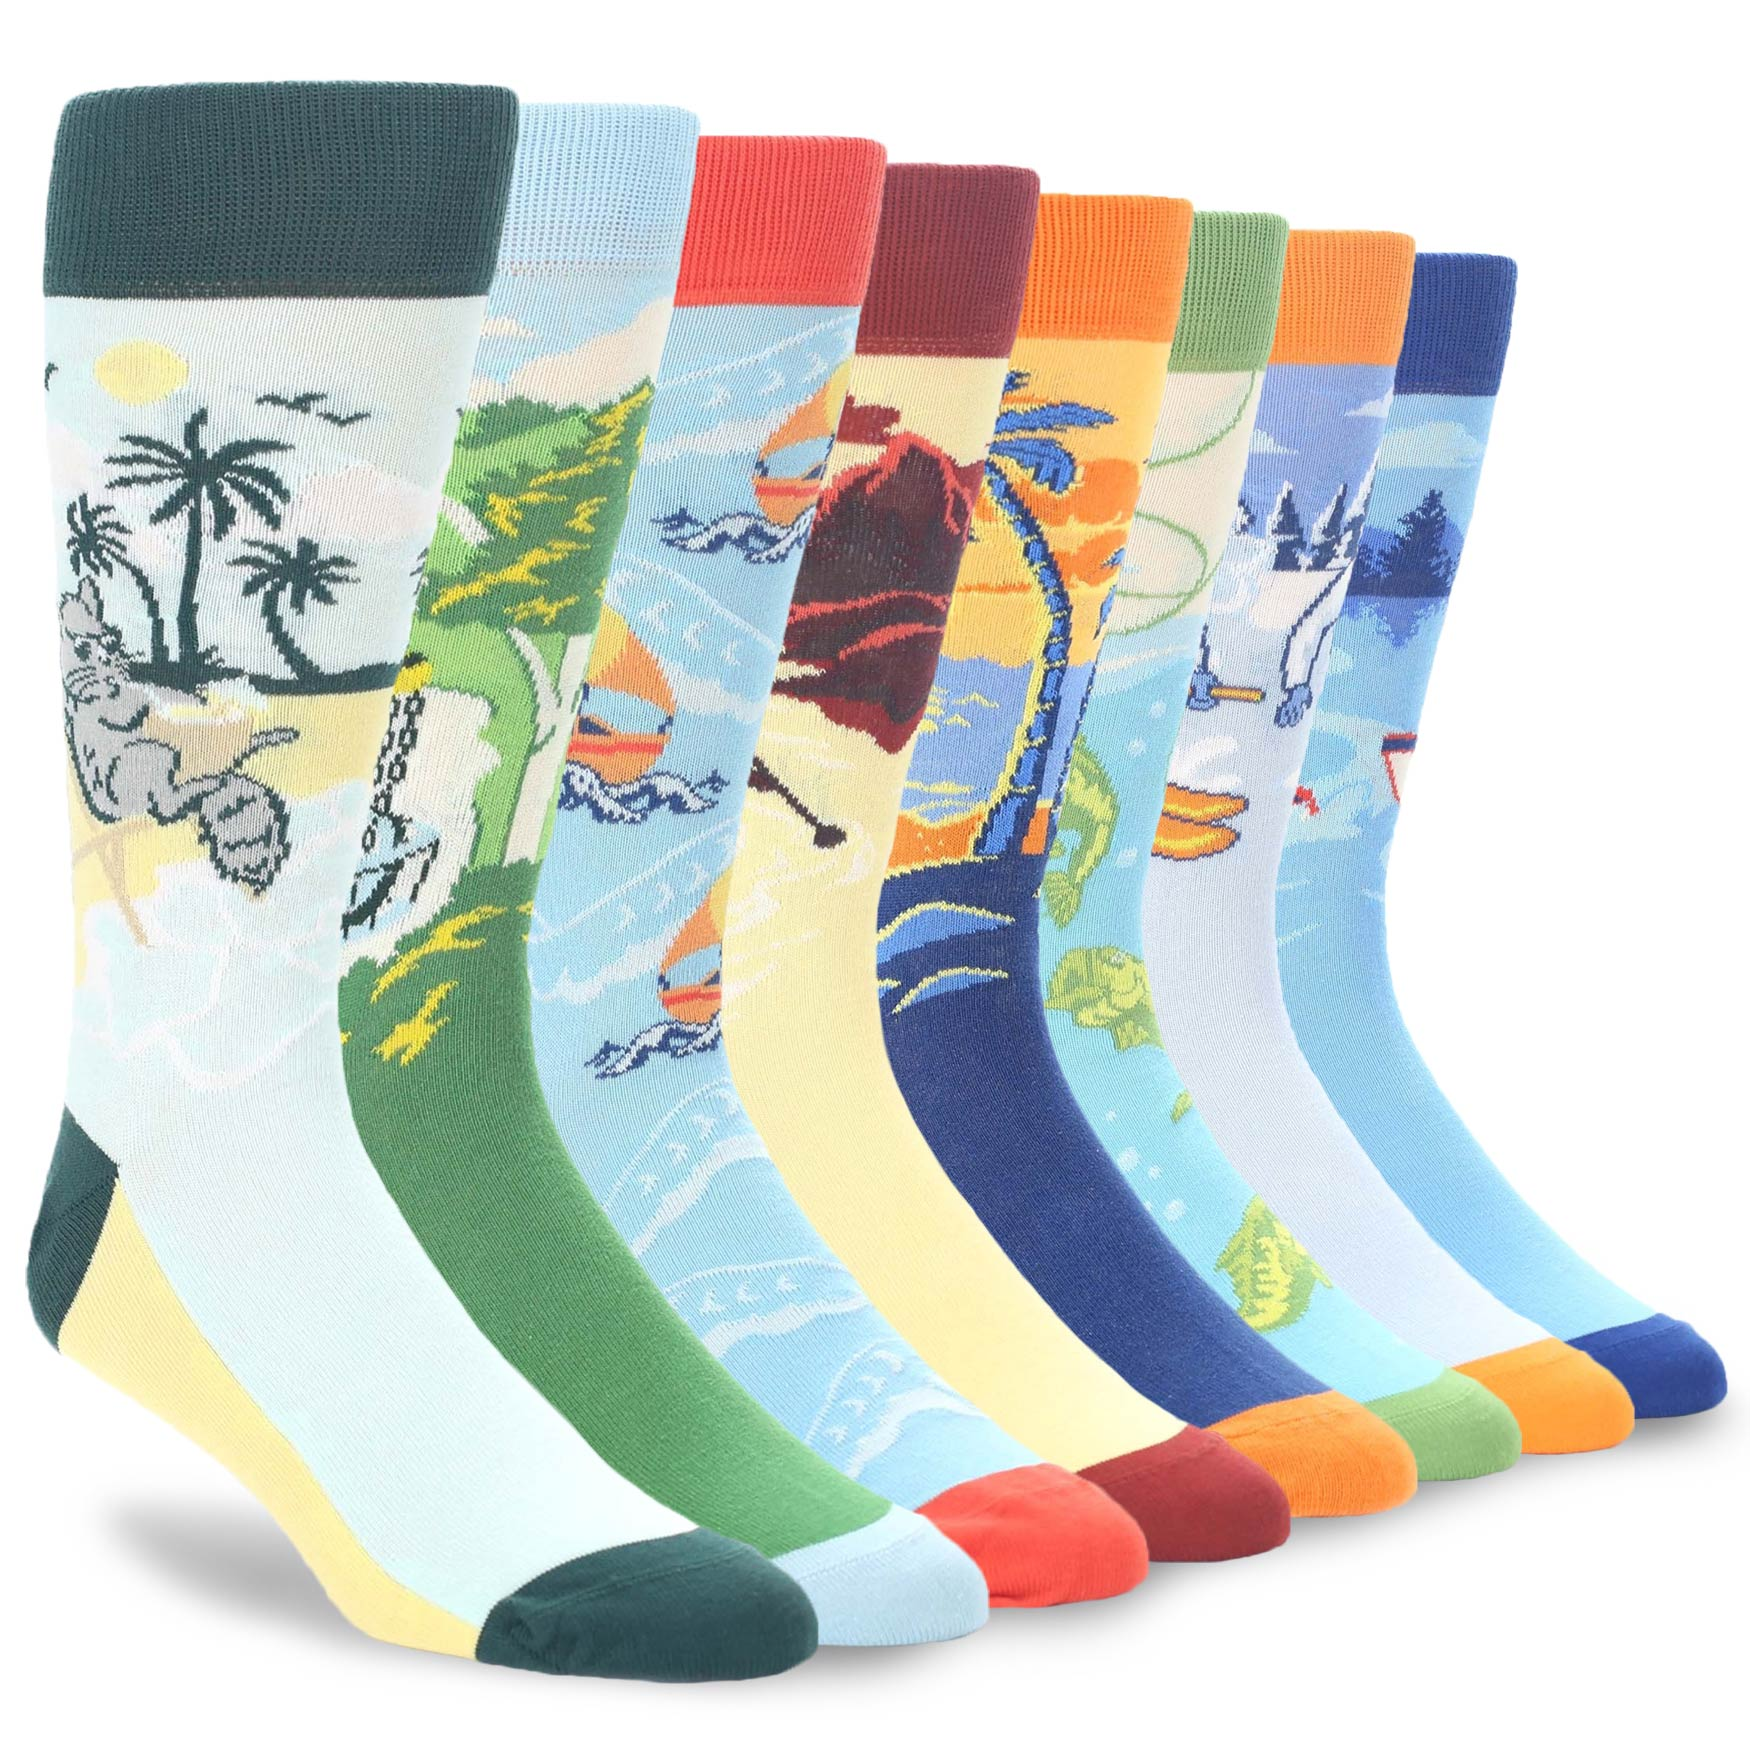 Example of Men's Outdoor Activity Dress Socks from boldSOCKS